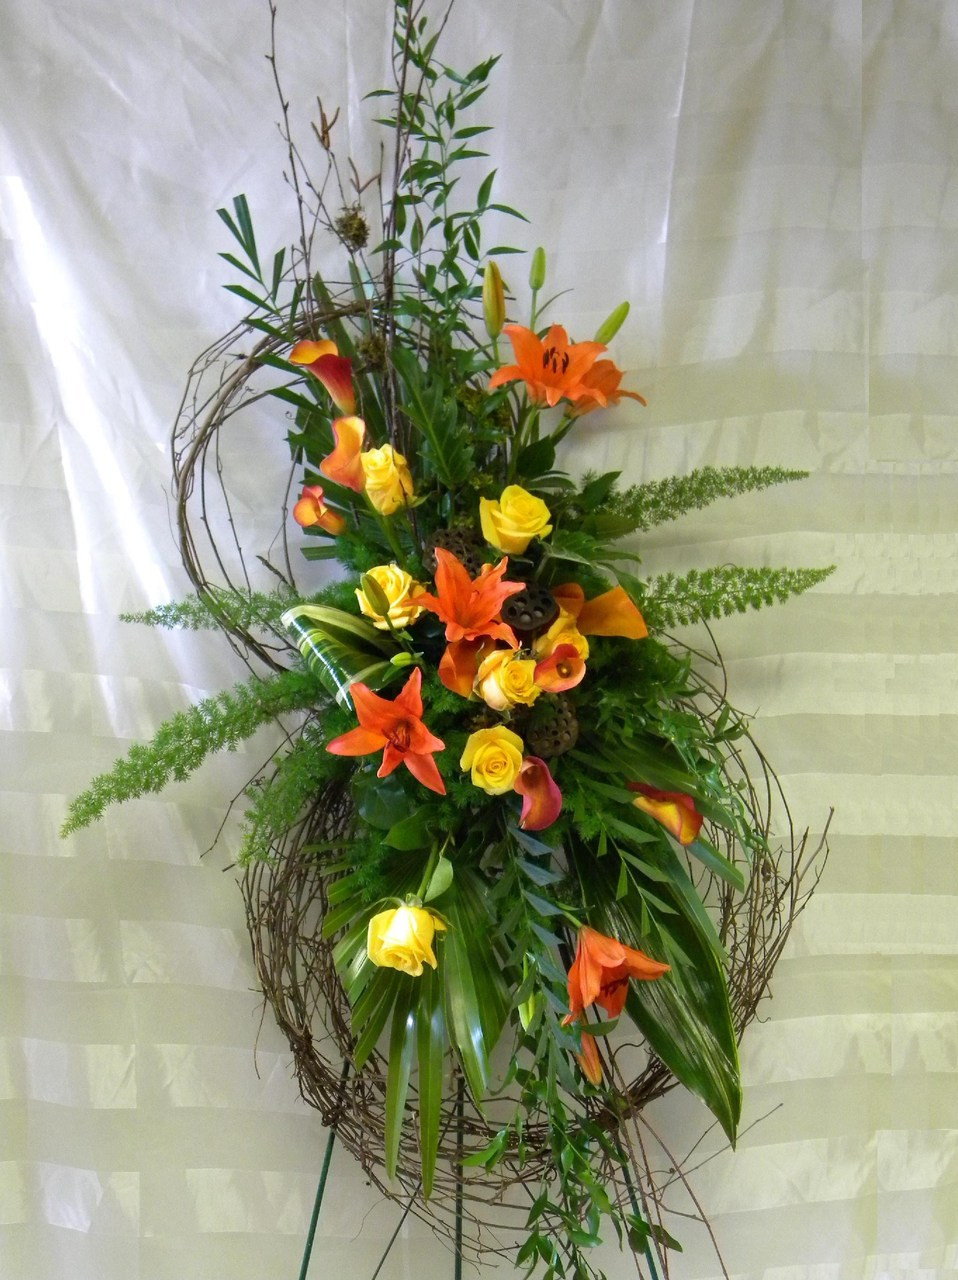 Sympathy grapevine wreath of flowers to local houston funeral homes autumn harvest grapevine wreath by enchanted florist tx sympathy flowers include orange lilies yellow izmirmasajfo Choice Image